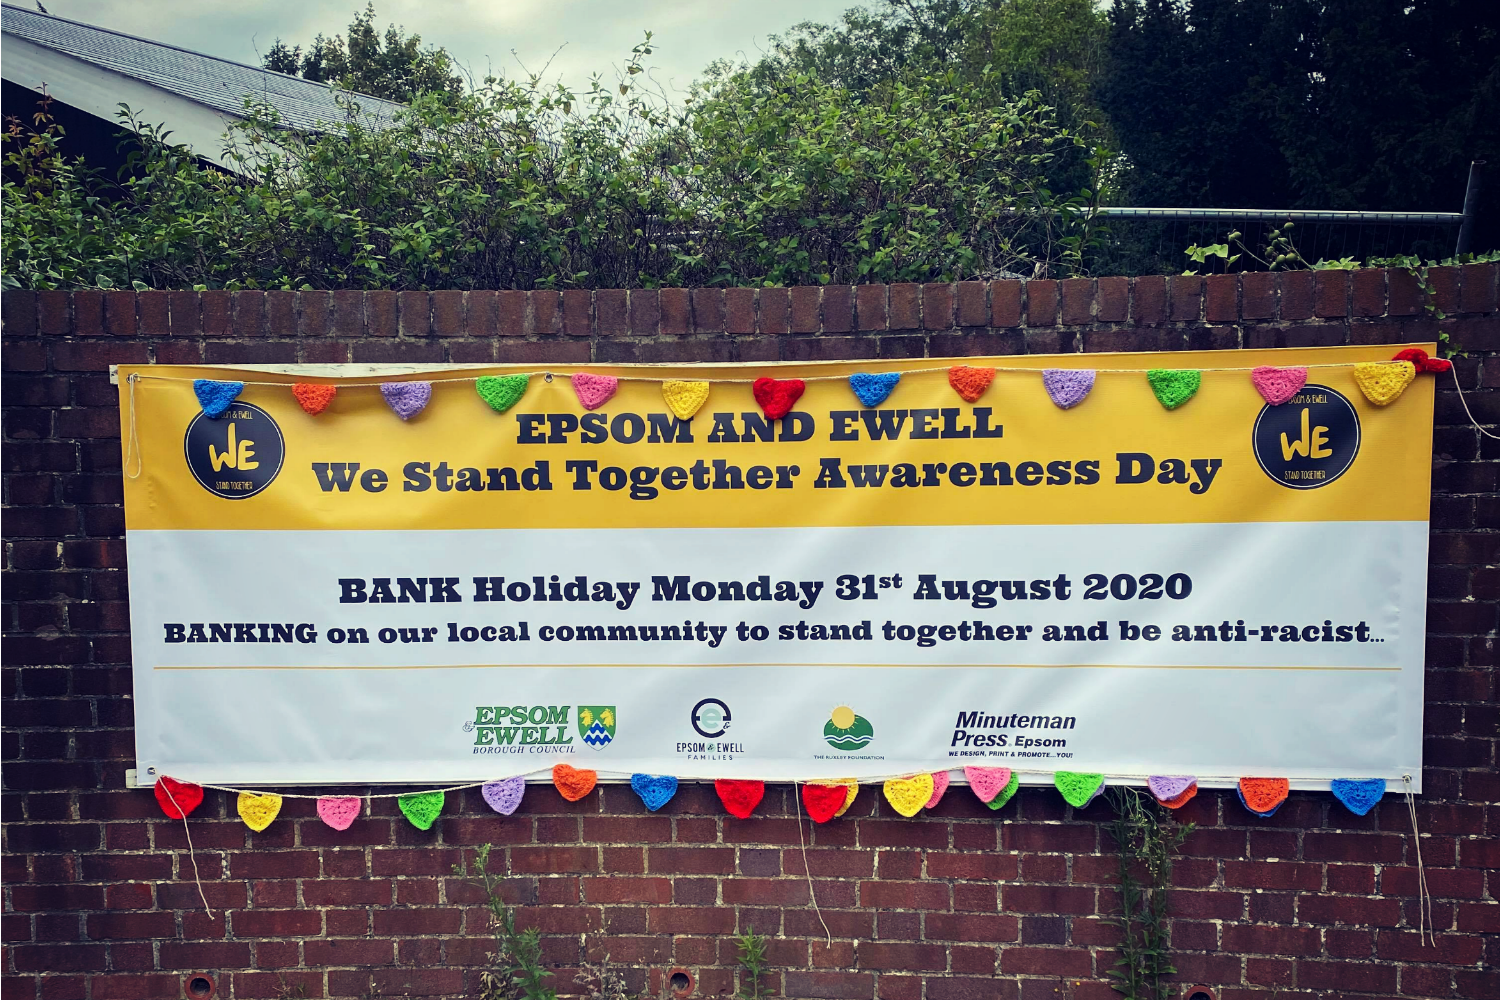 WHY WE SHOULD BE STANDING TOGETHER – EPSOM AND EWELL